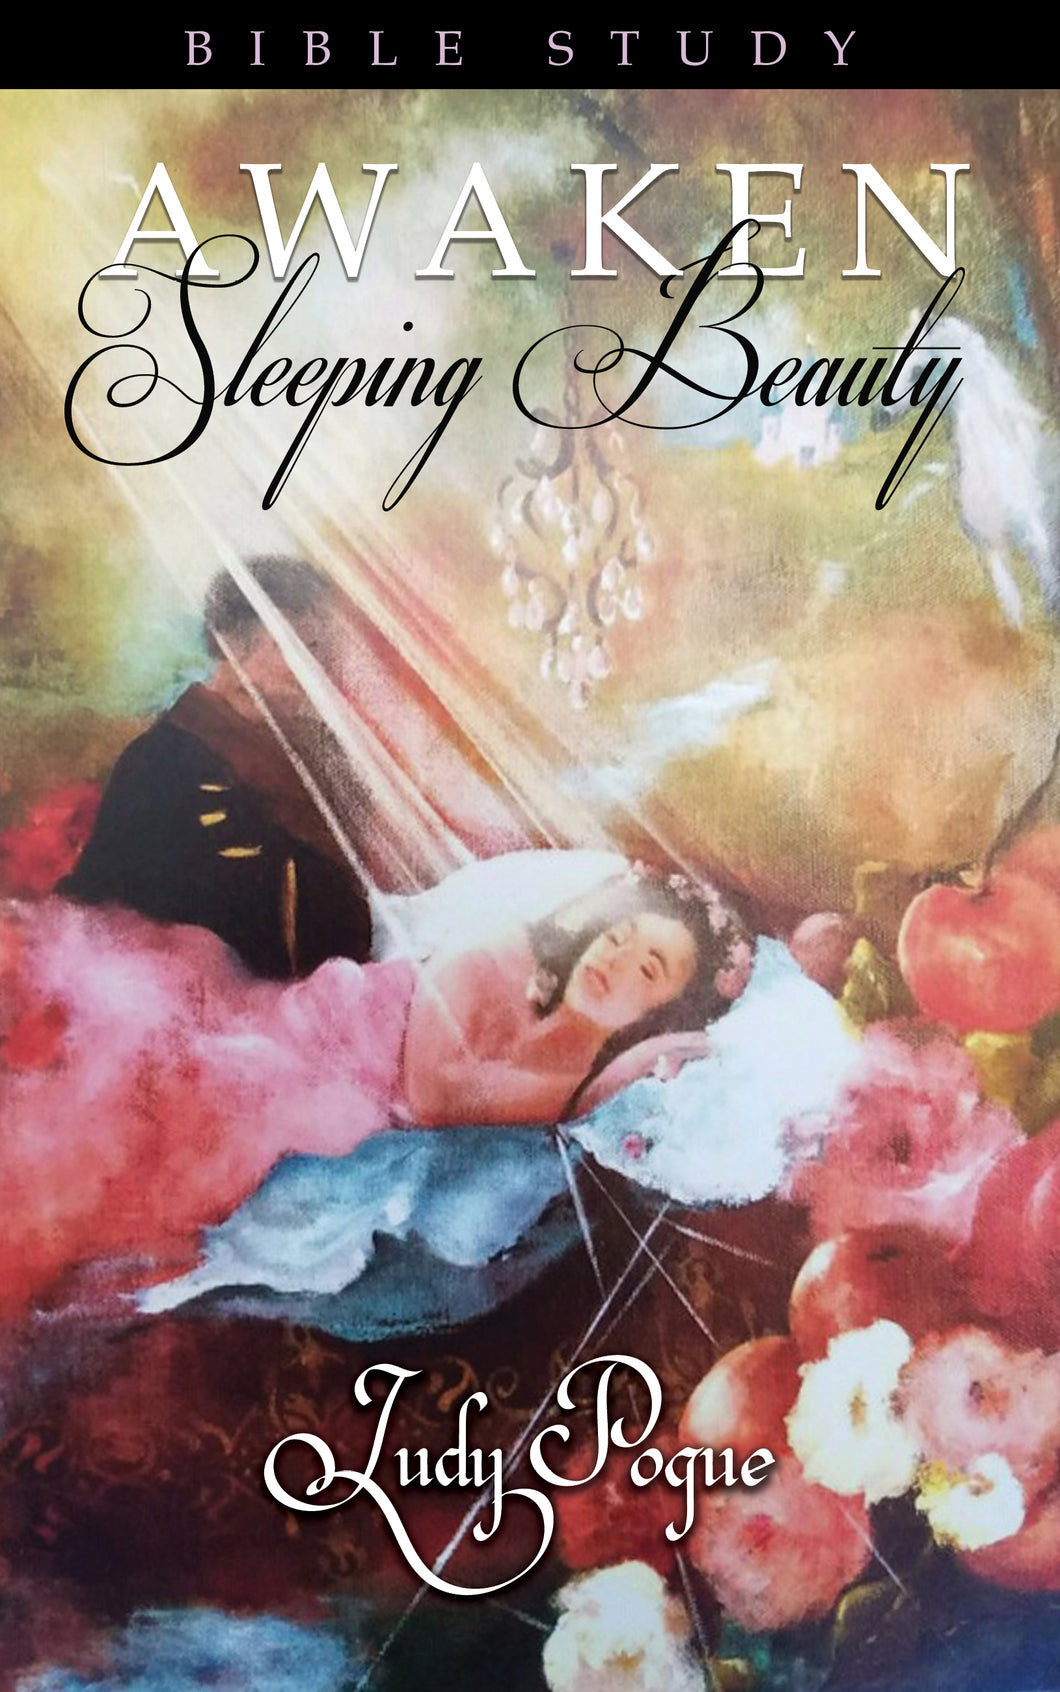 Awaken Sleeping Beauty - Bible Study  - English